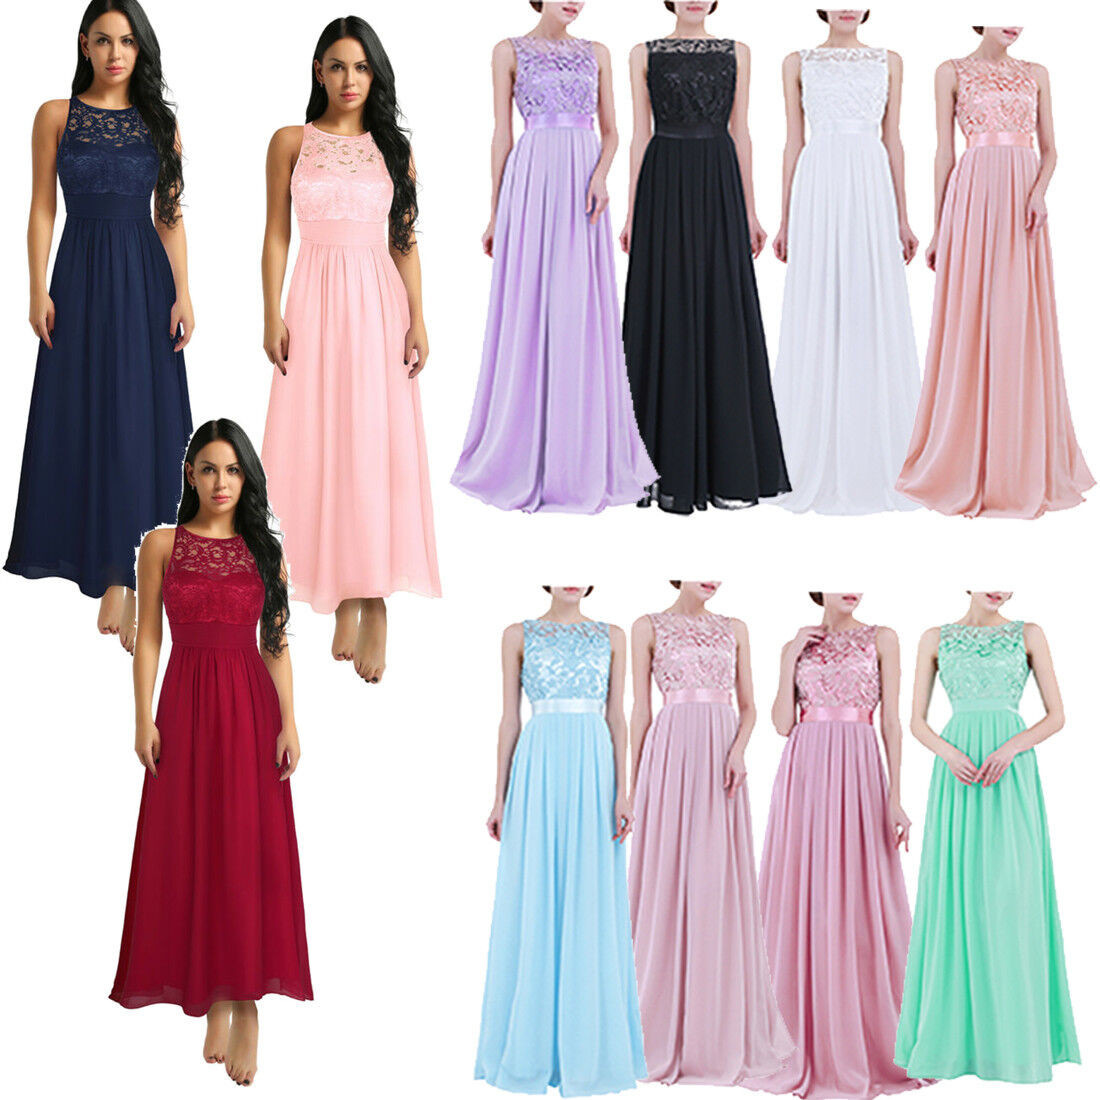 Women Formal Wedding Bridesmaid Evening Party Ball Long Lace Gown Cocktail Dress